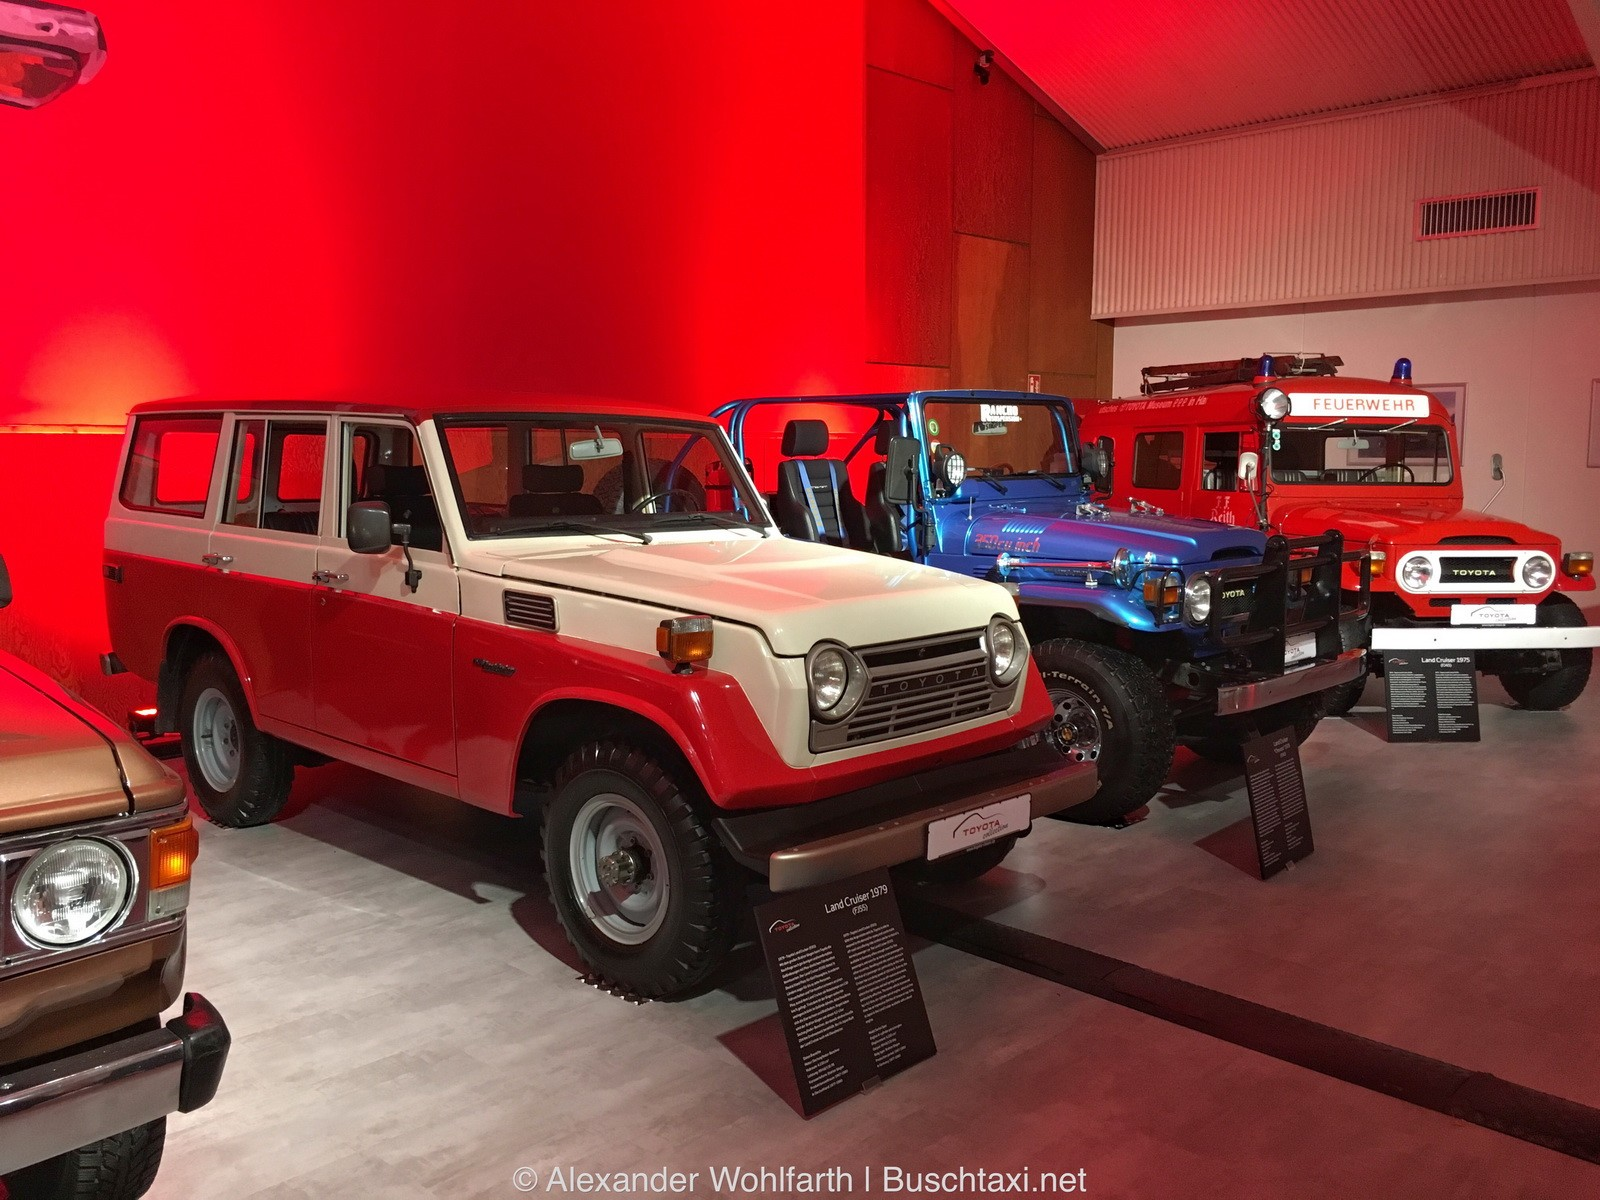 2017-11-23 toyota collection 15